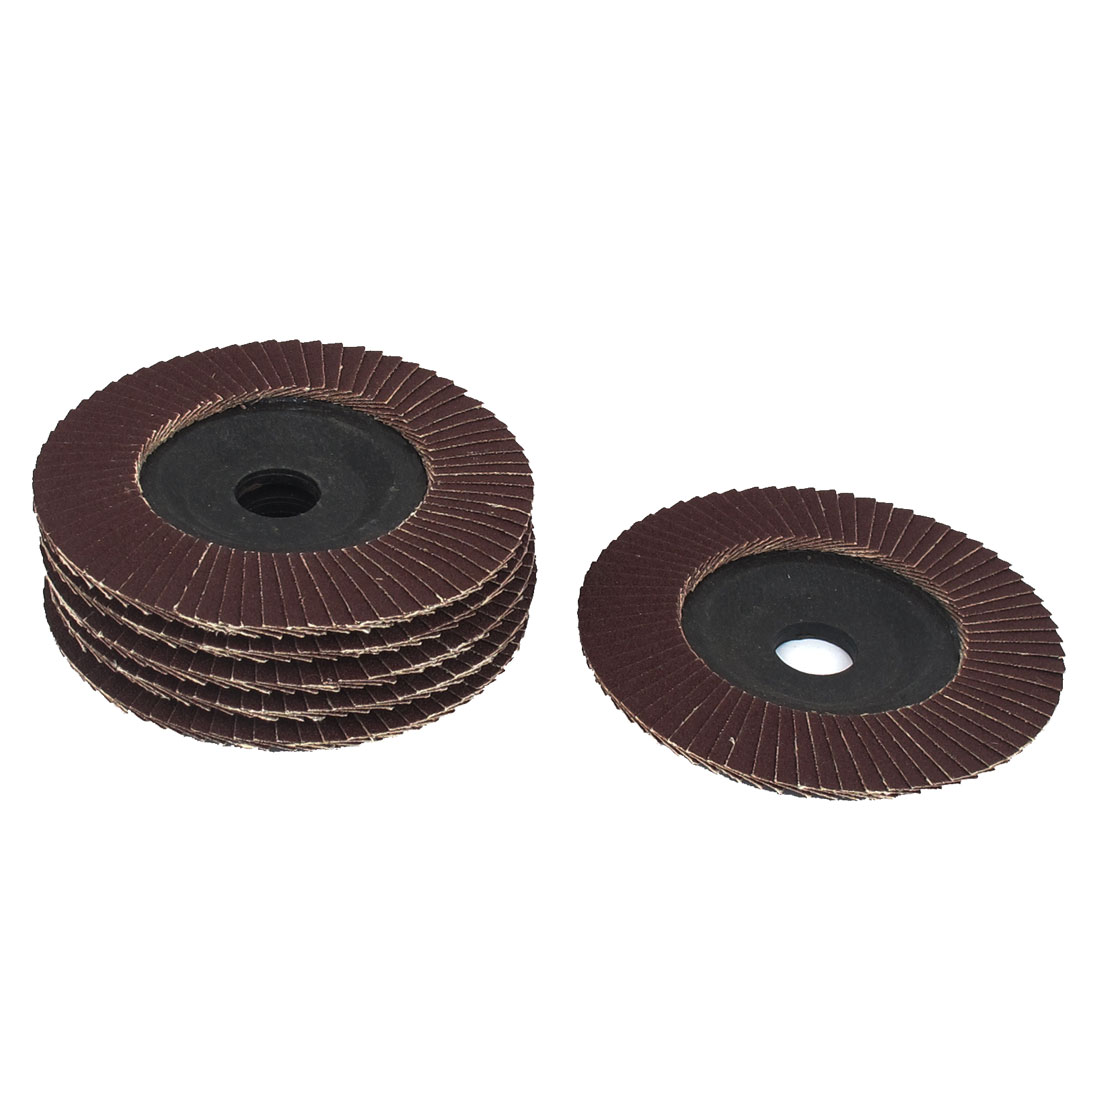 "6pcs 100mm 4"" Dia 18mm Bore 180 Grit Flap Sanding Discs Polishing Buffing Wheels"